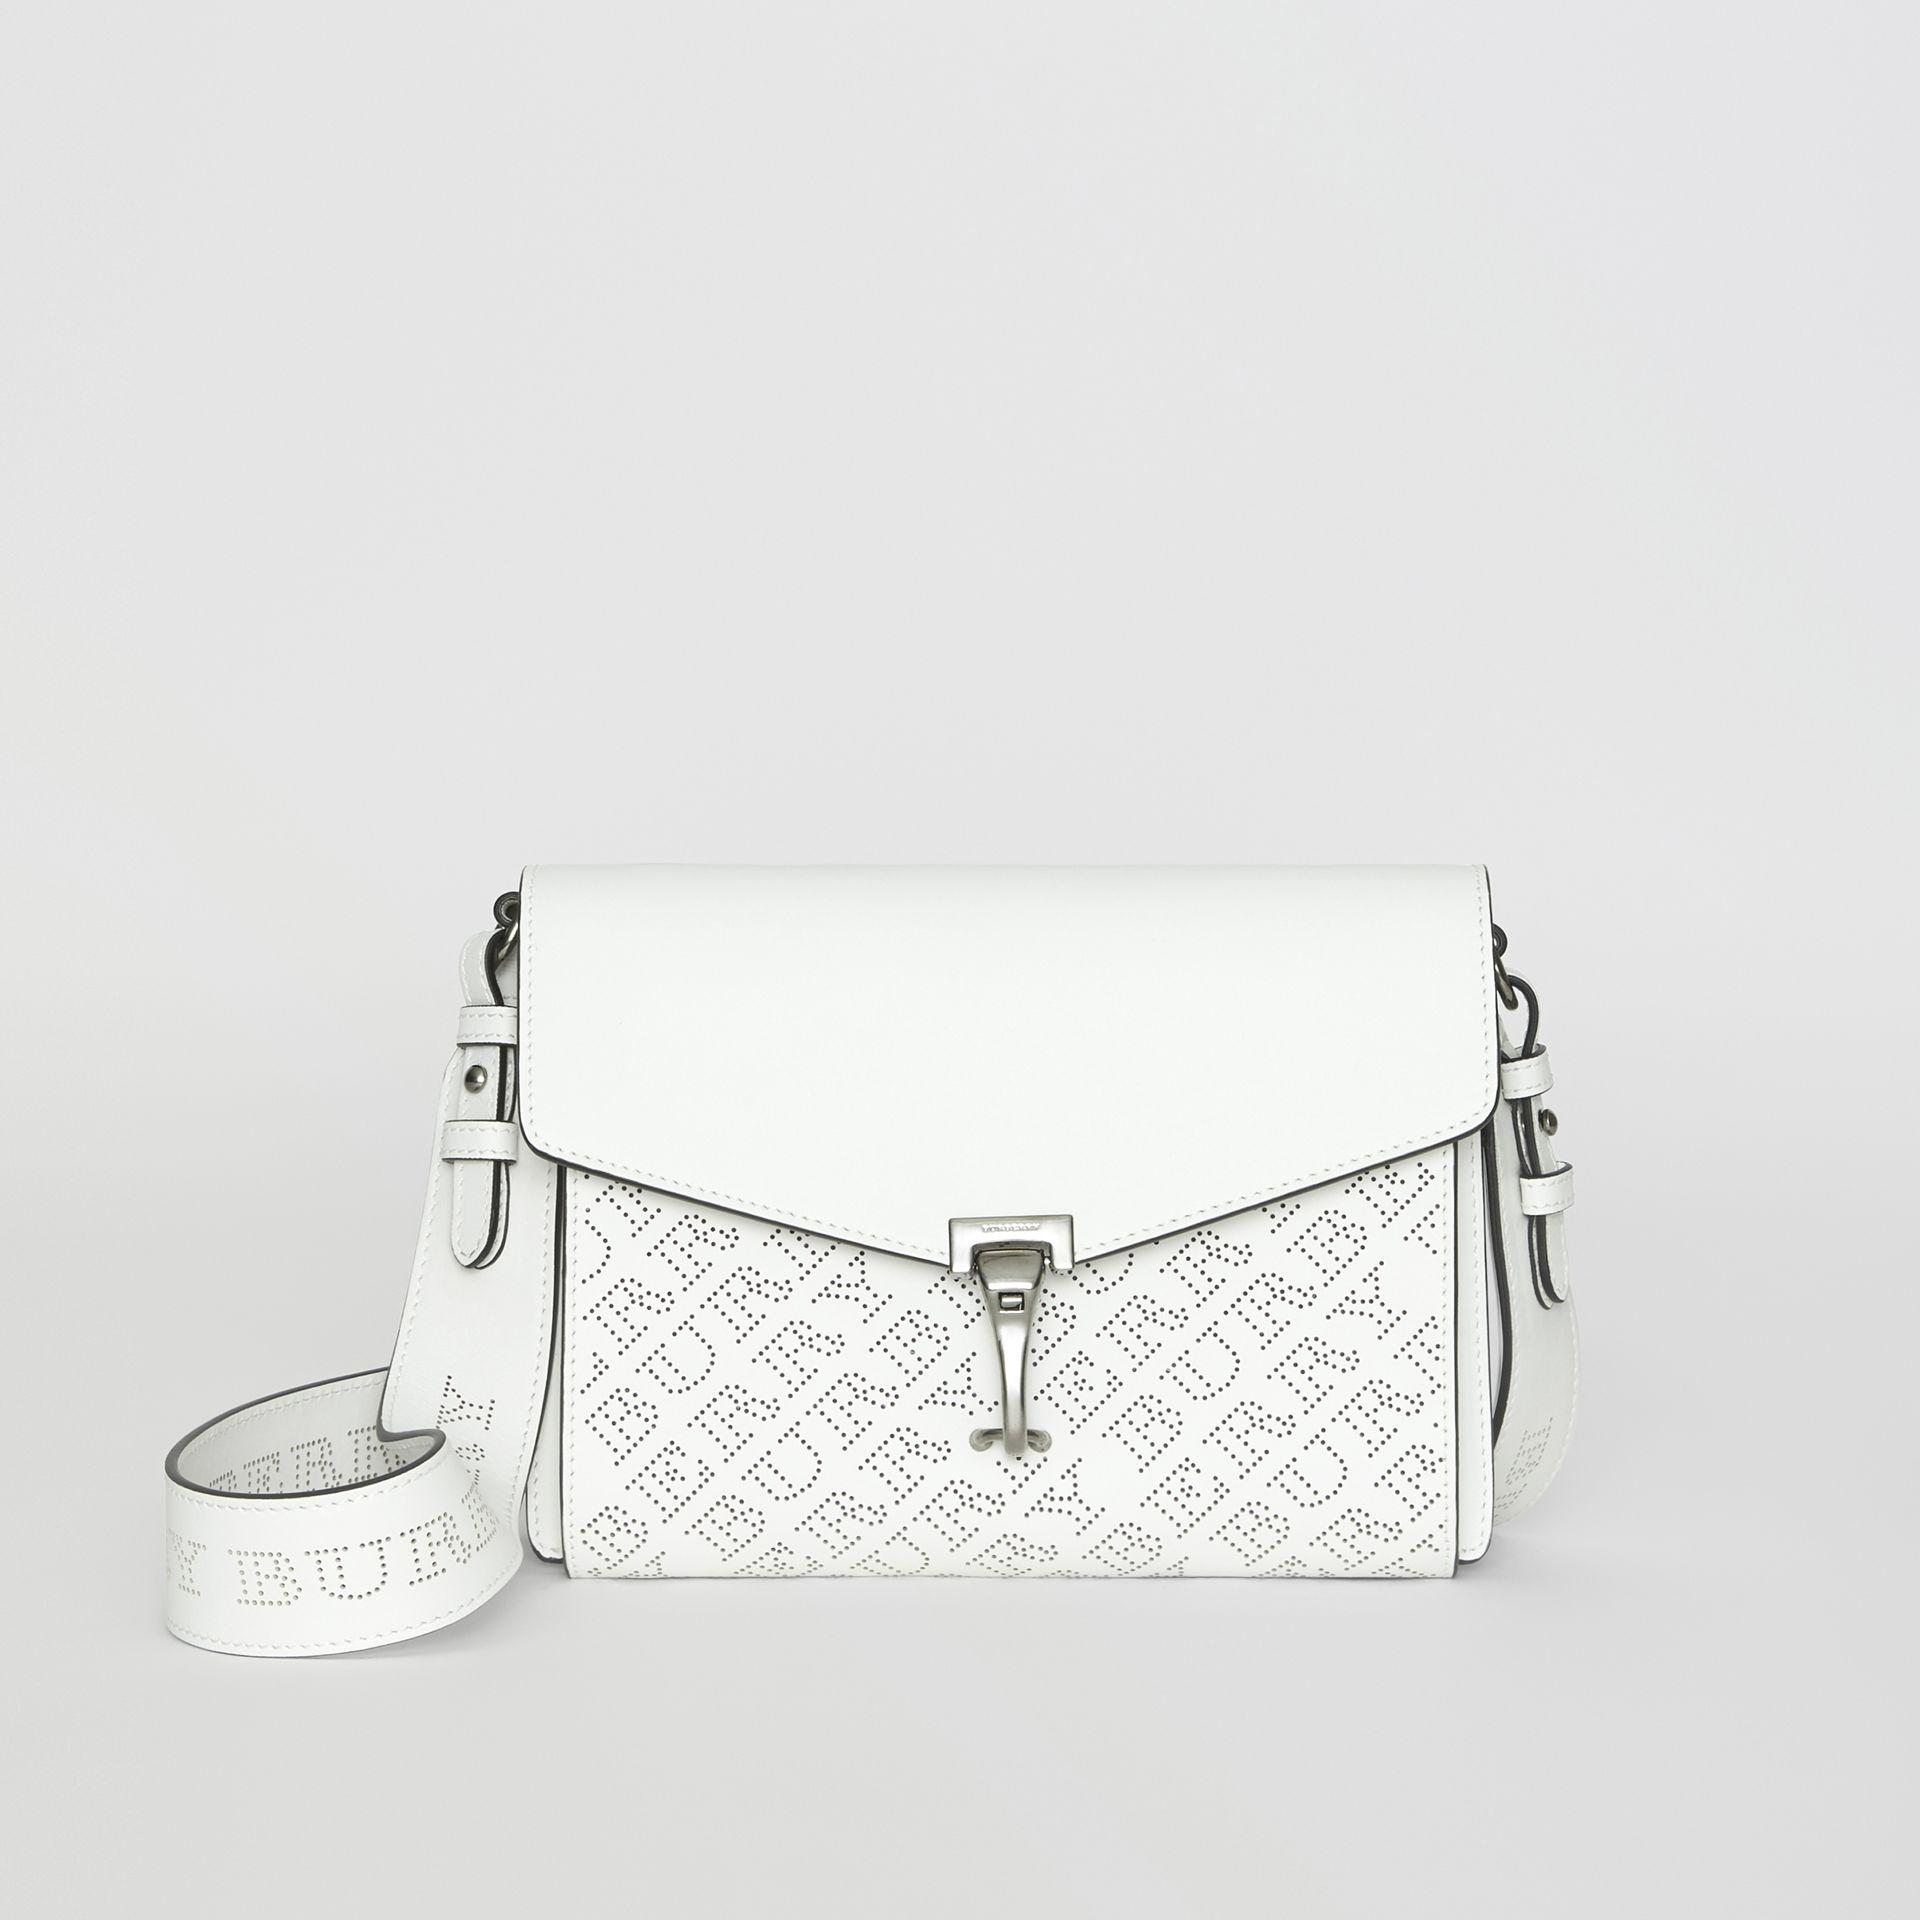 7c39bb39b1fb Lyst - Burberry Small Perforated Logo Leather Crossbody Bag in White